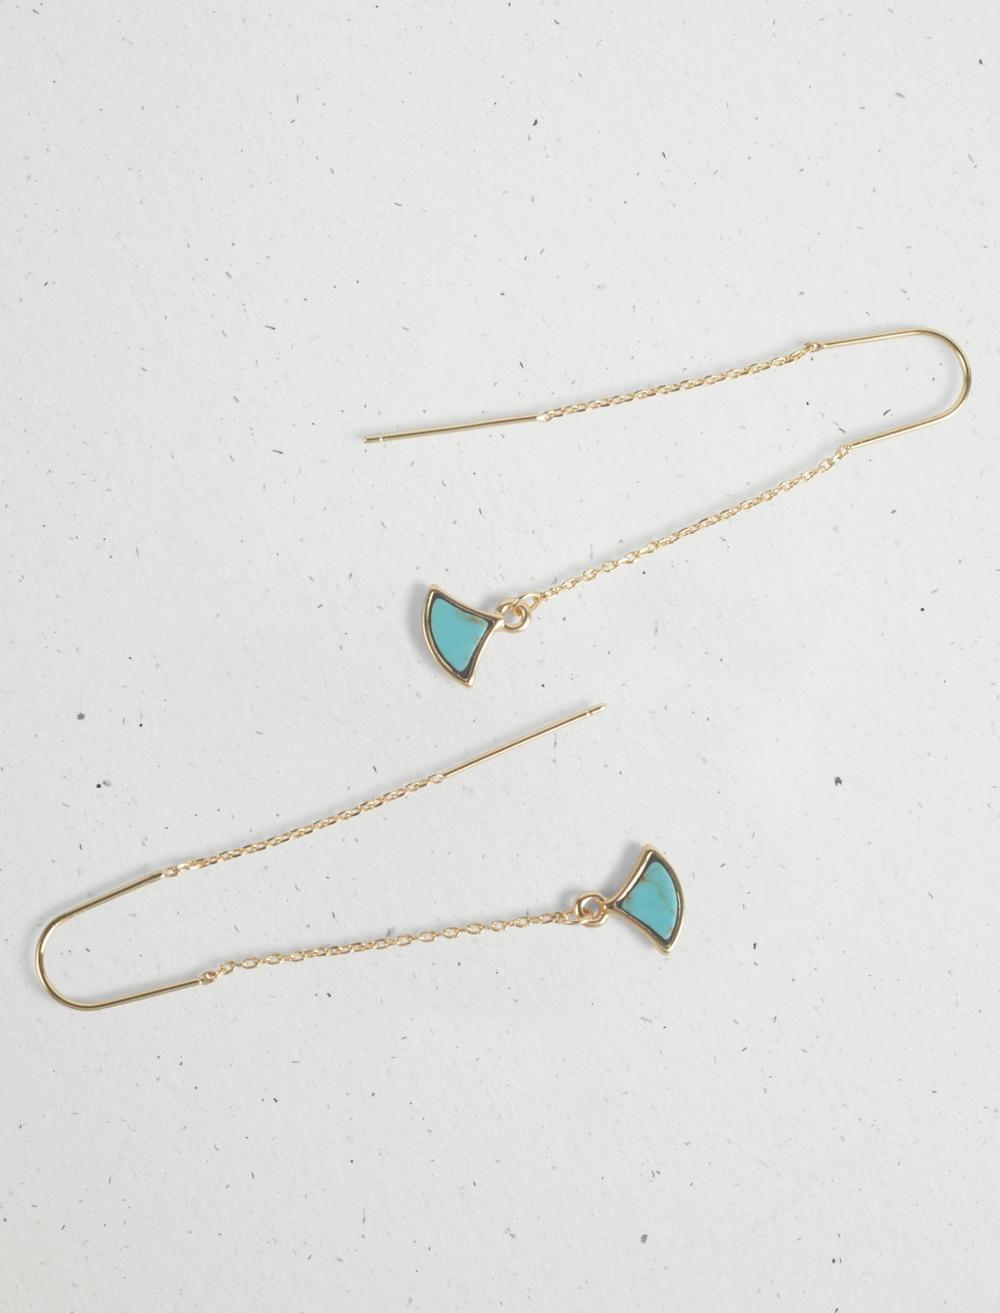 TURQUOISE INLAY THREADER EARRING, image 2